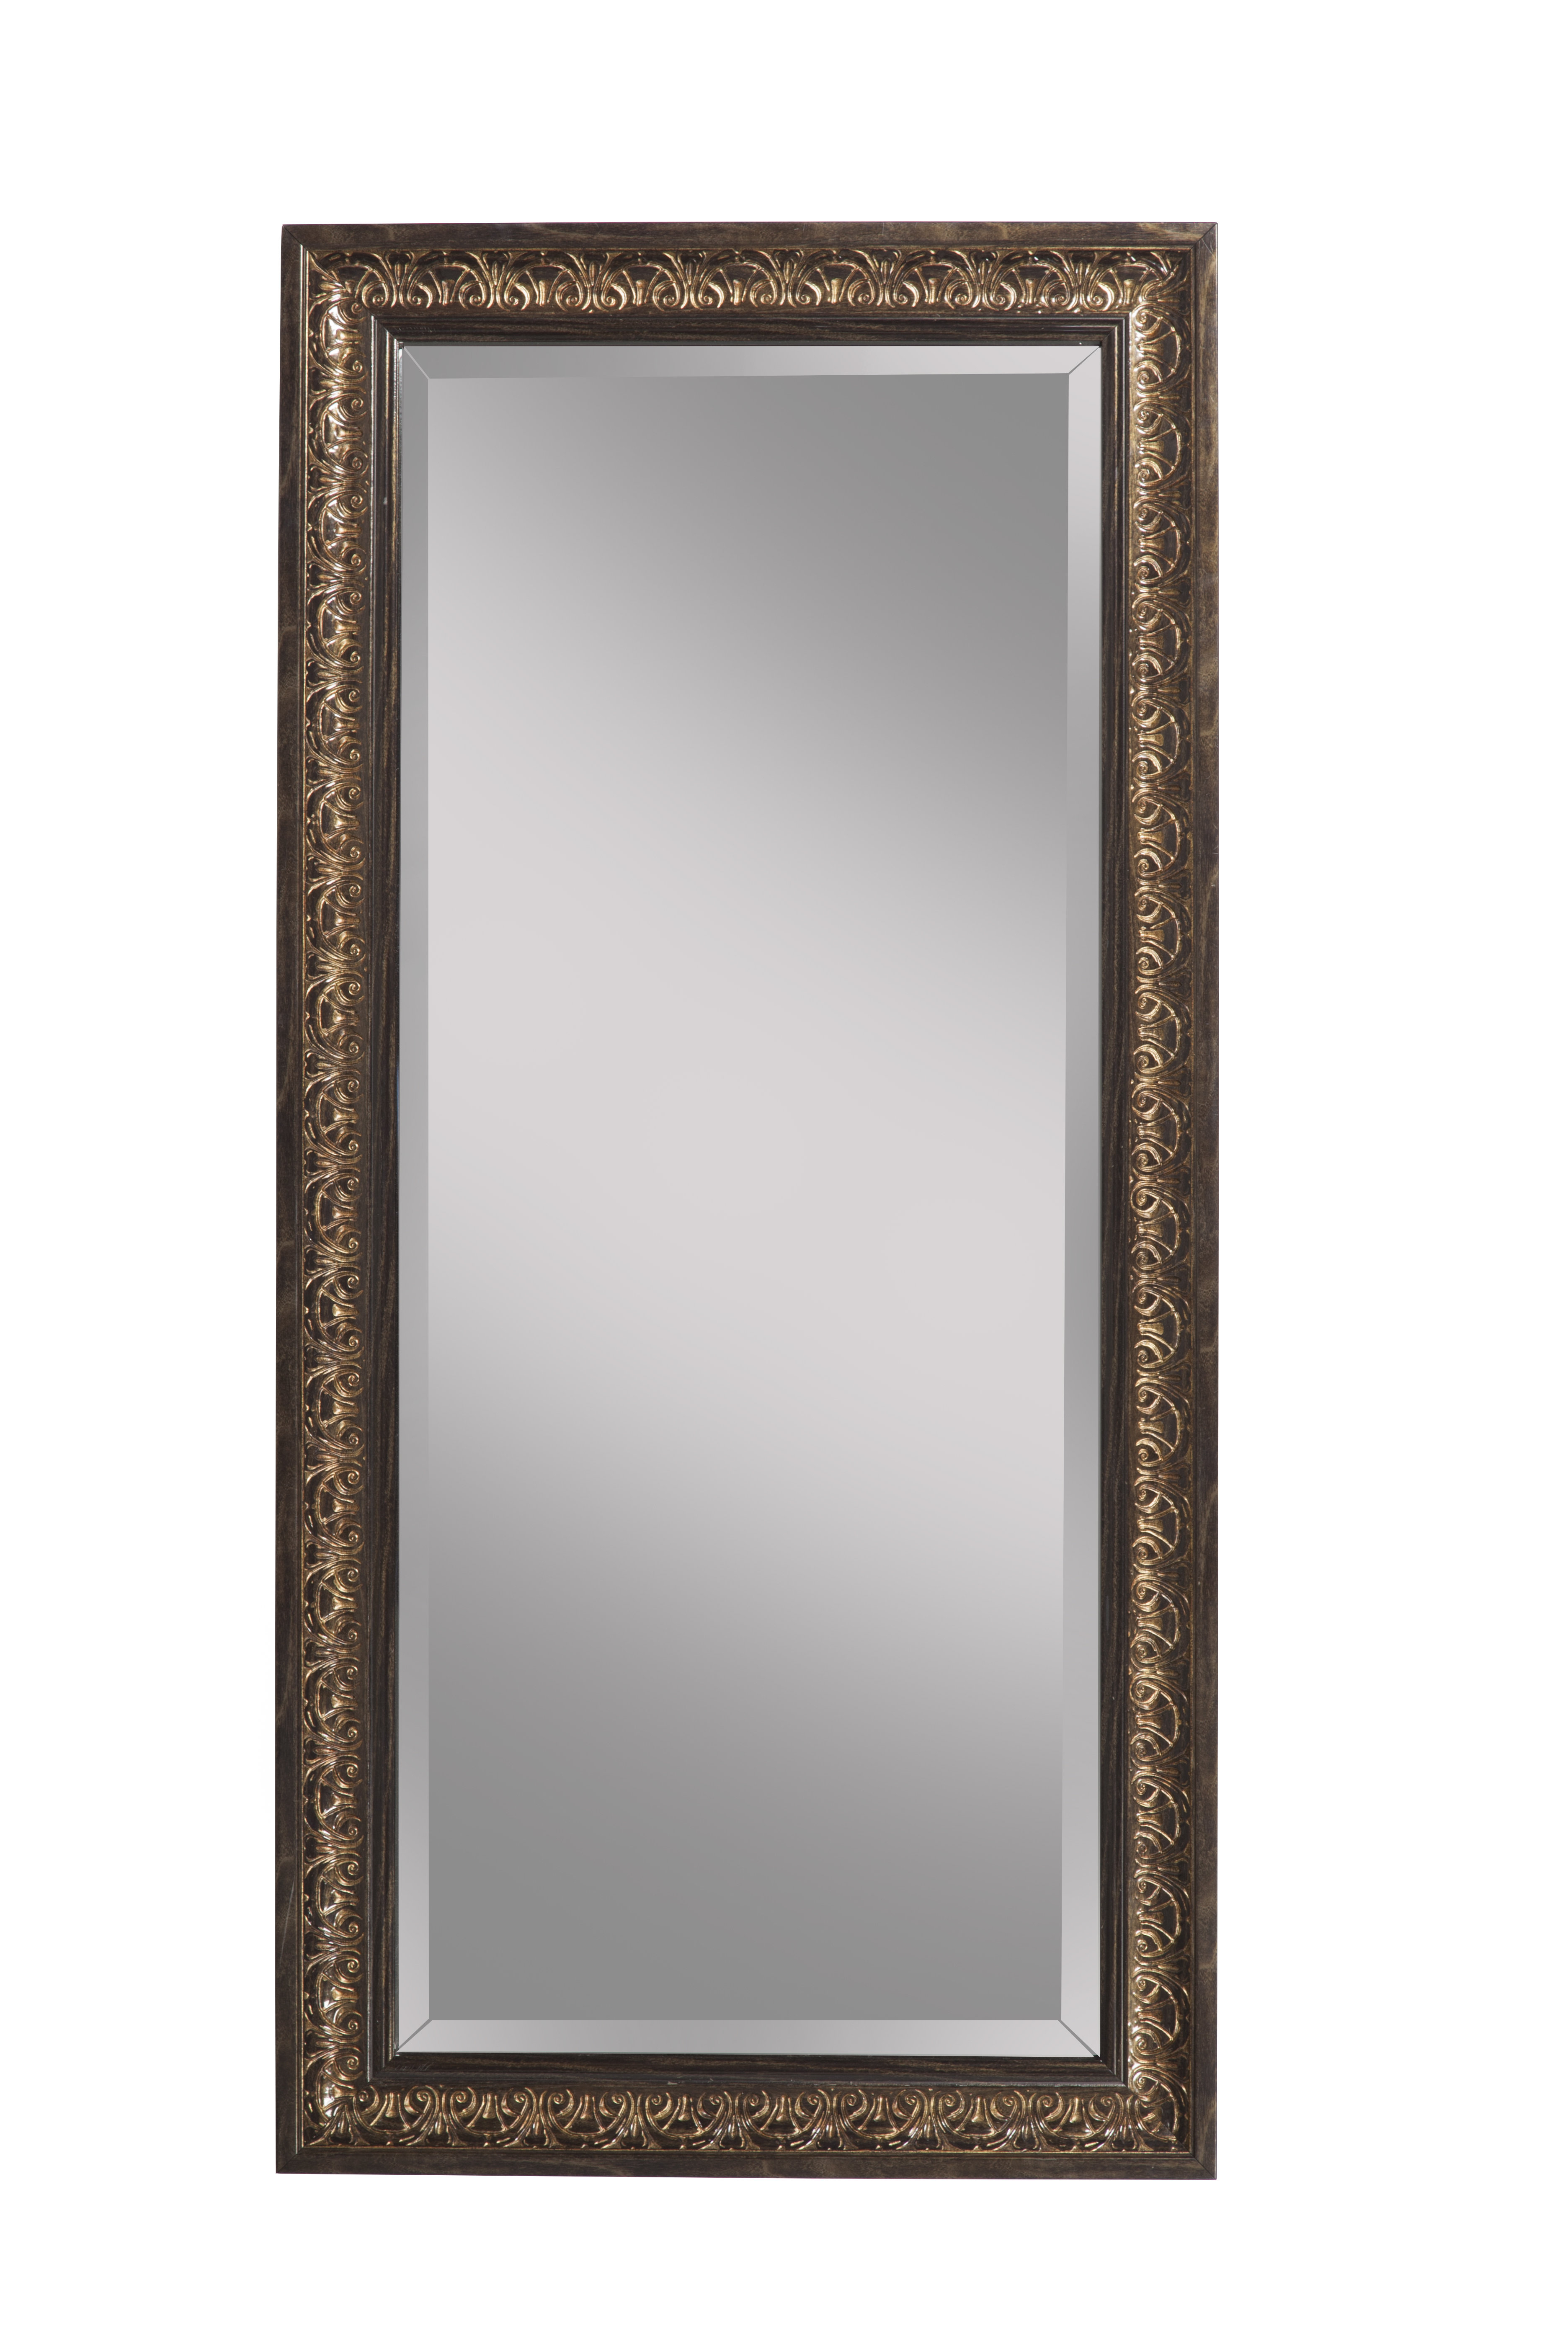 Boyers Wall Mirror Throughout Boyers Wall Mirrors (Image 5 of 20)